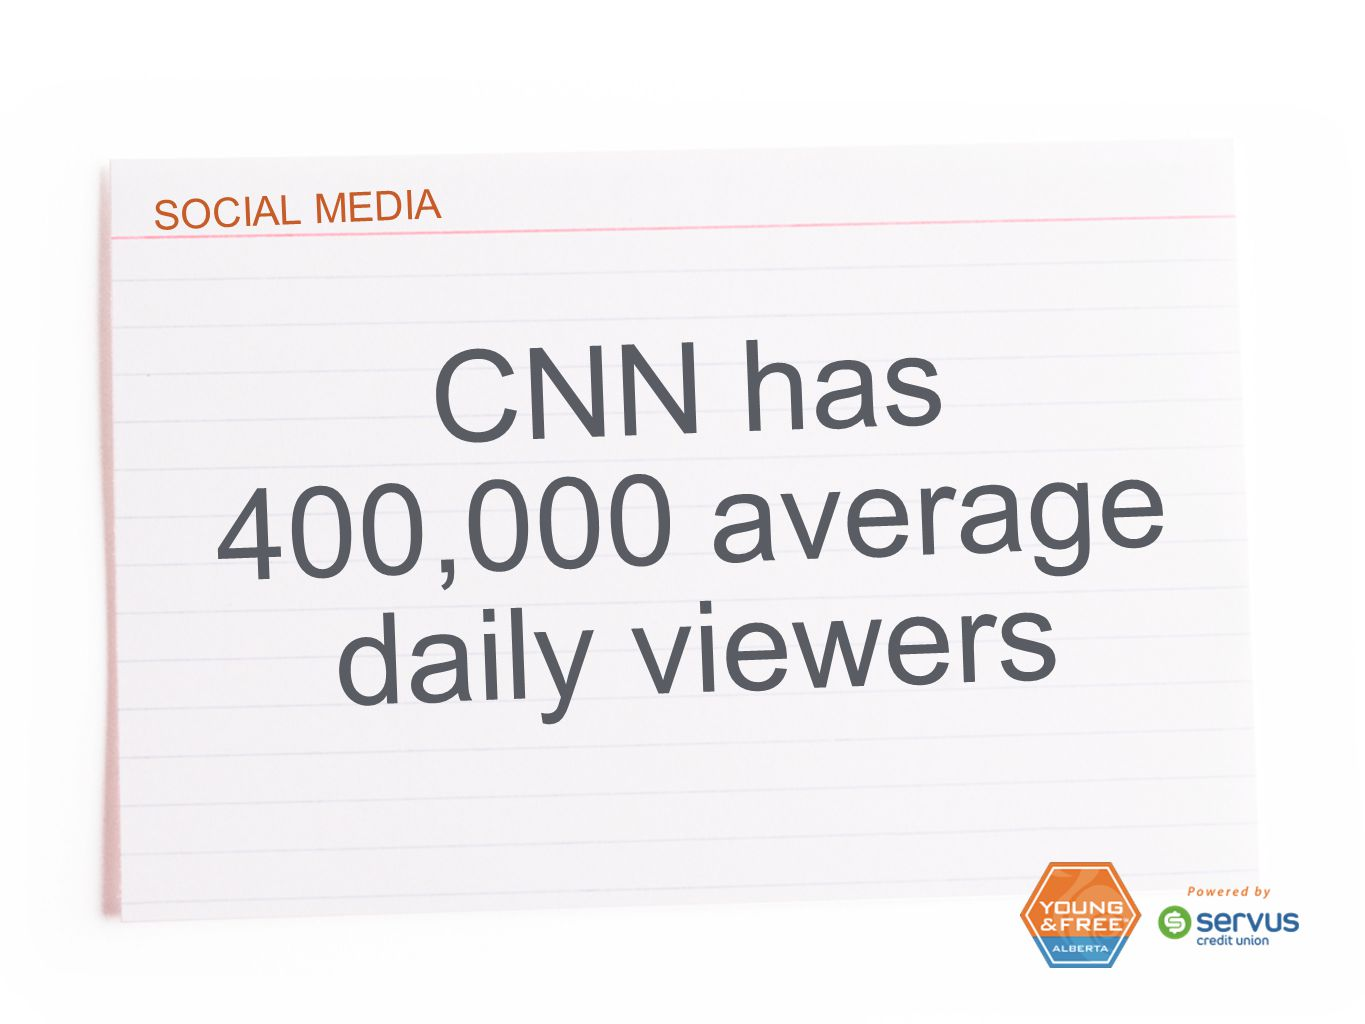 SOCIAL MEDIA CNN has 400,000 average daily viewers